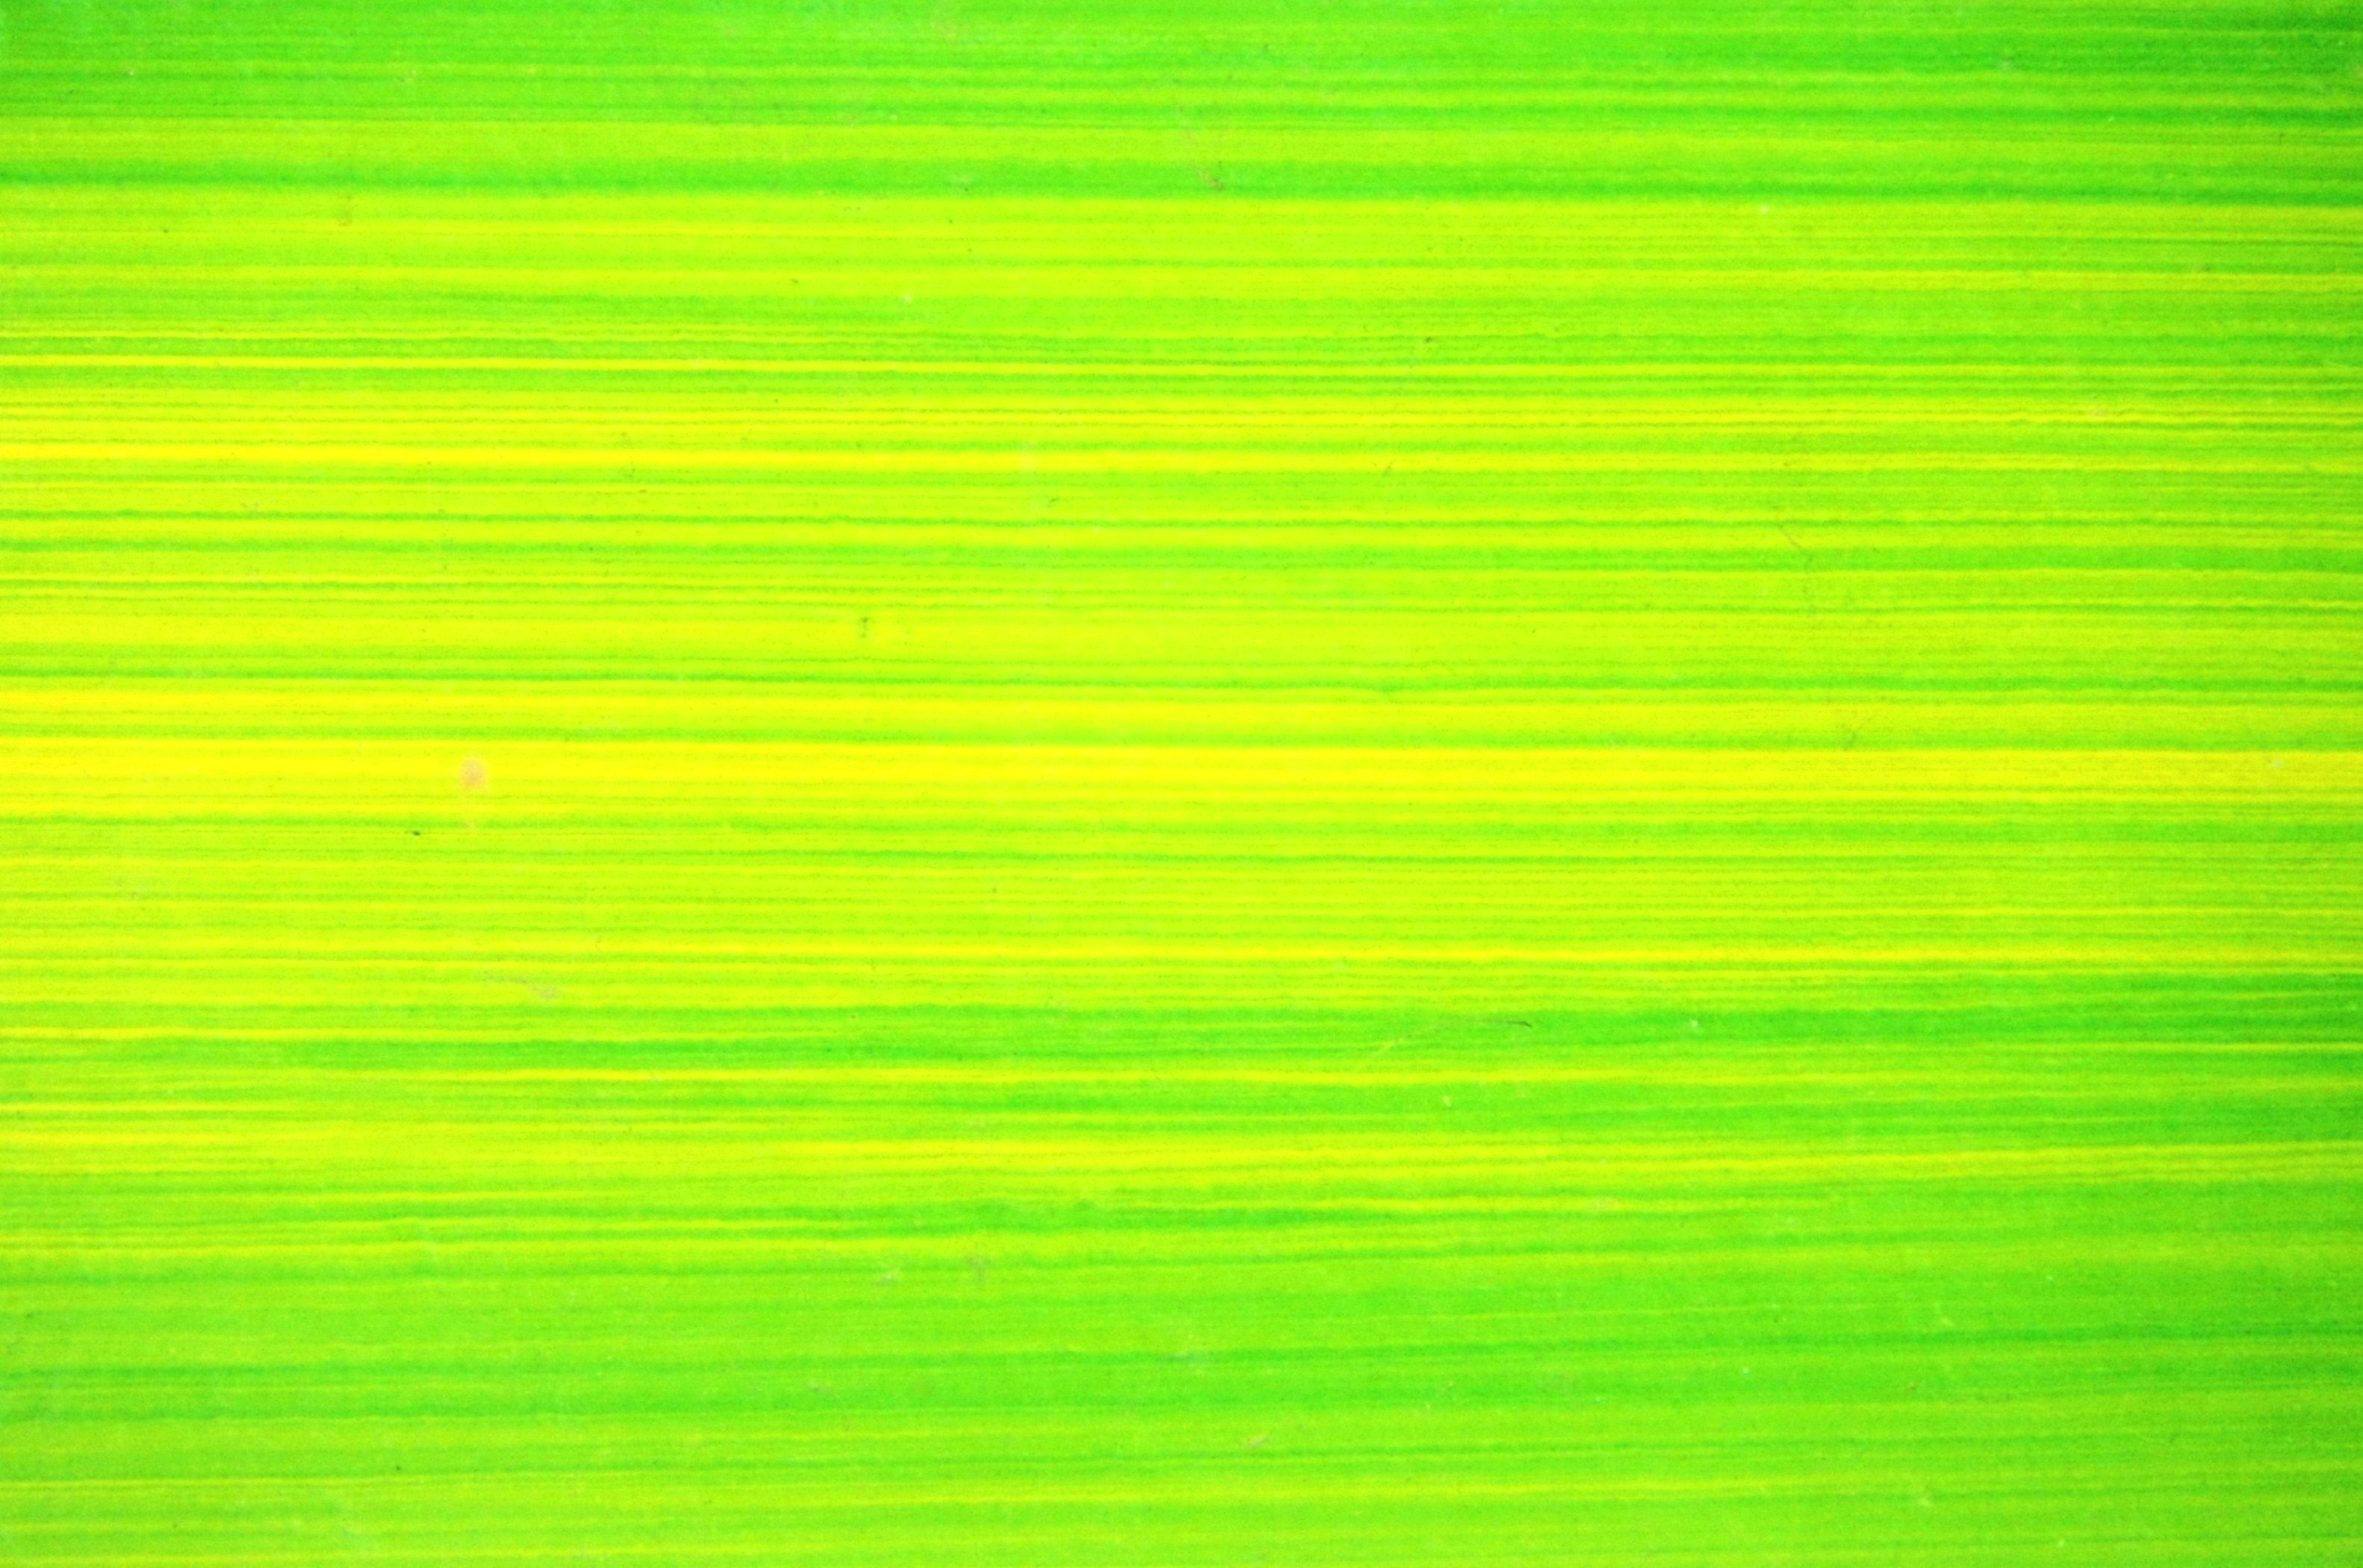 Bright green lines background photo